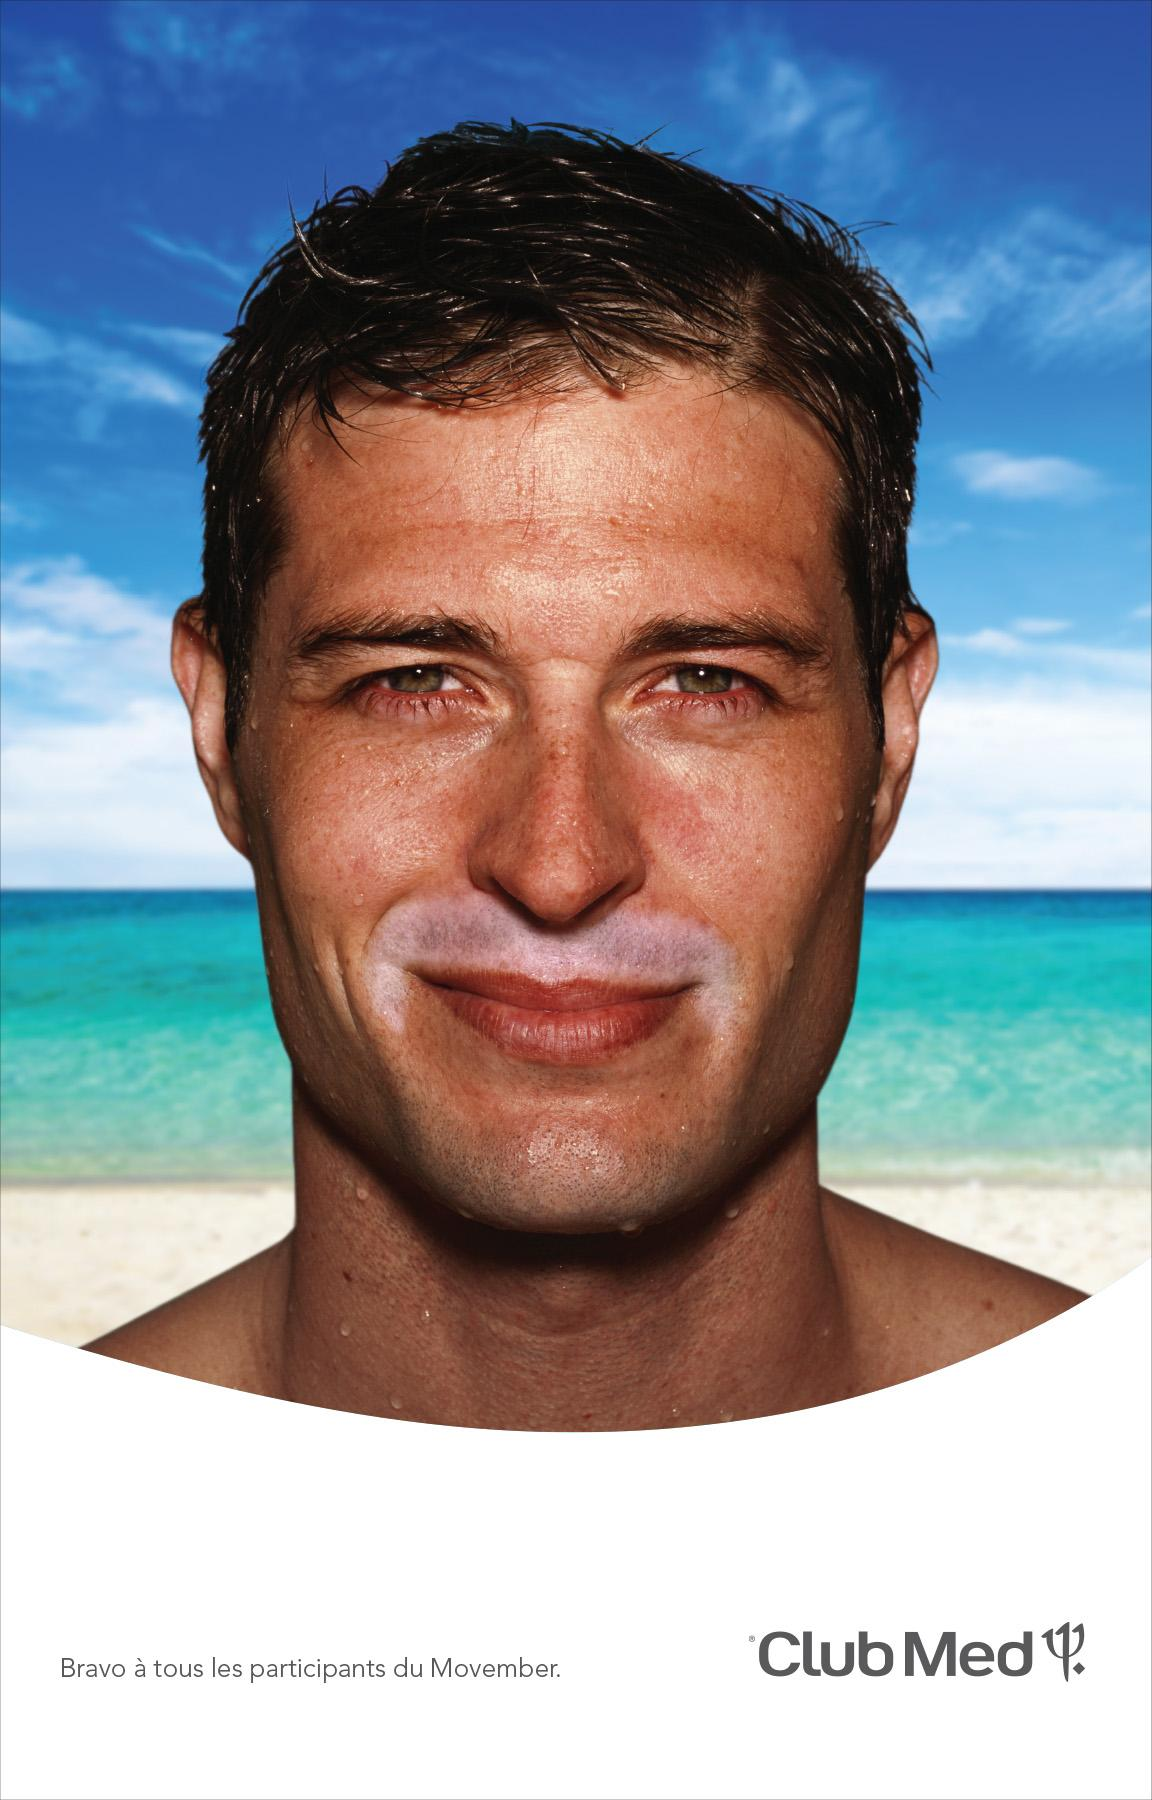 Club Med's Movember Poster